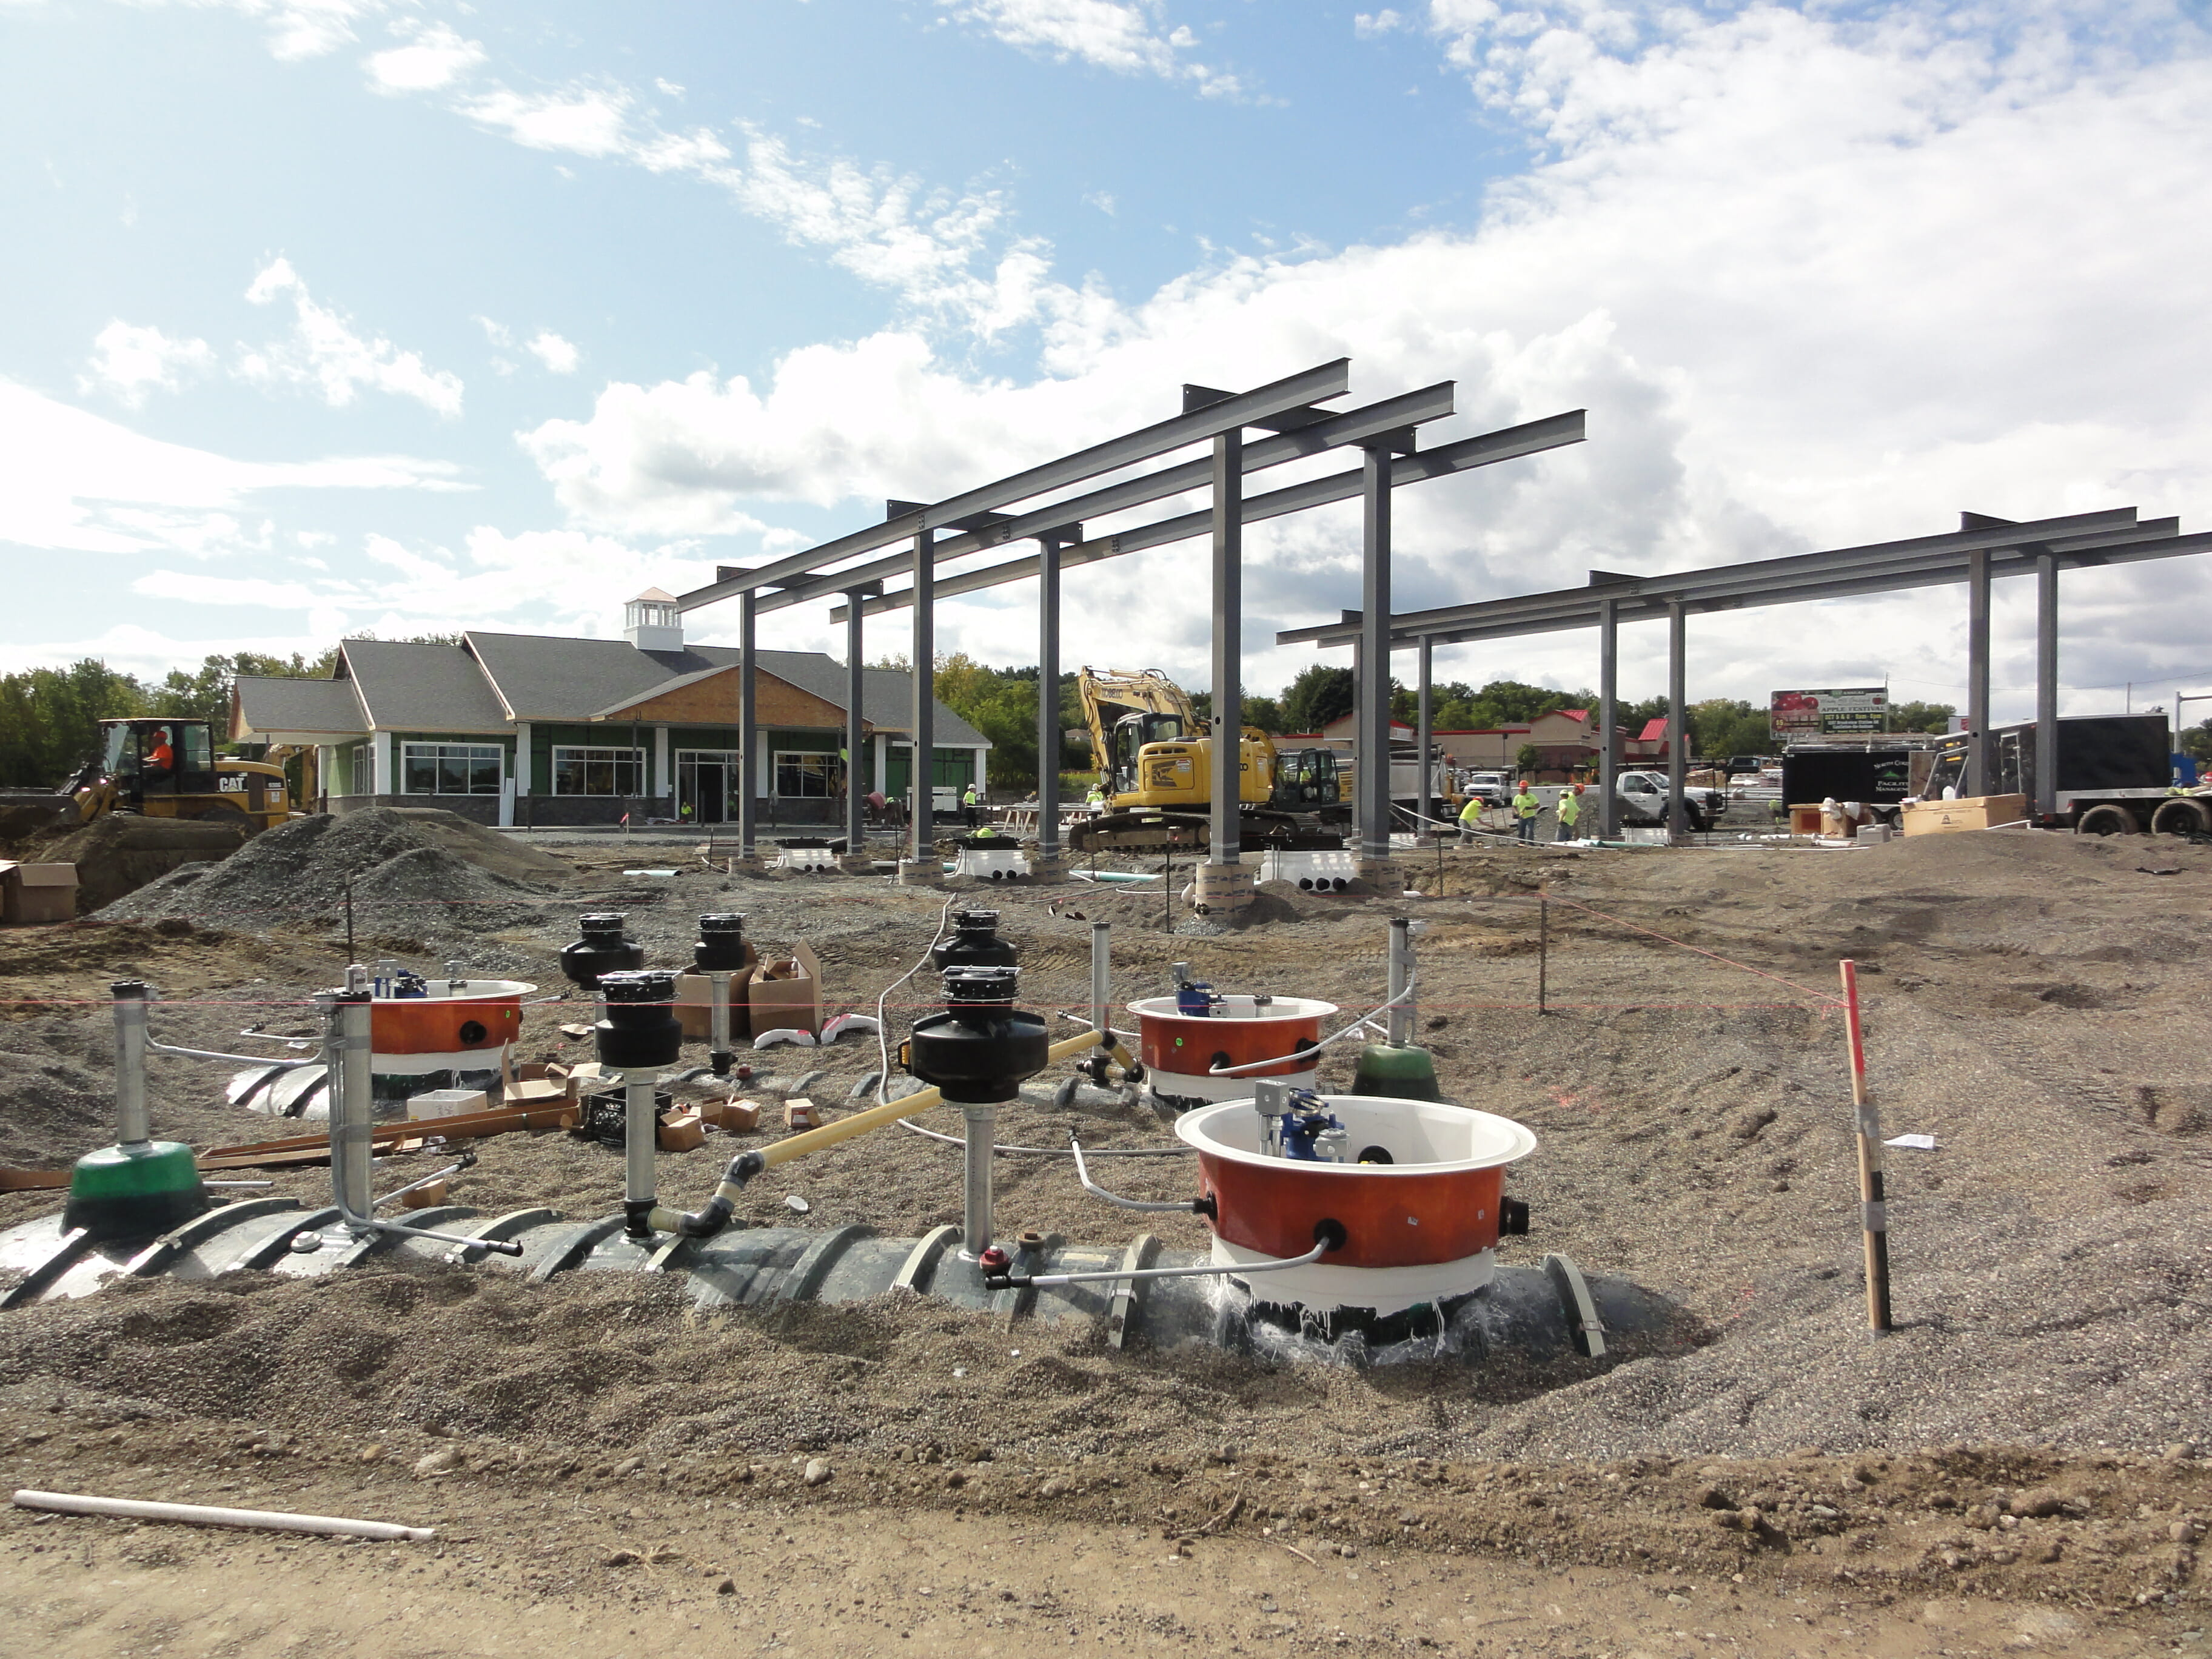 Steel beams being erected for gas canopy